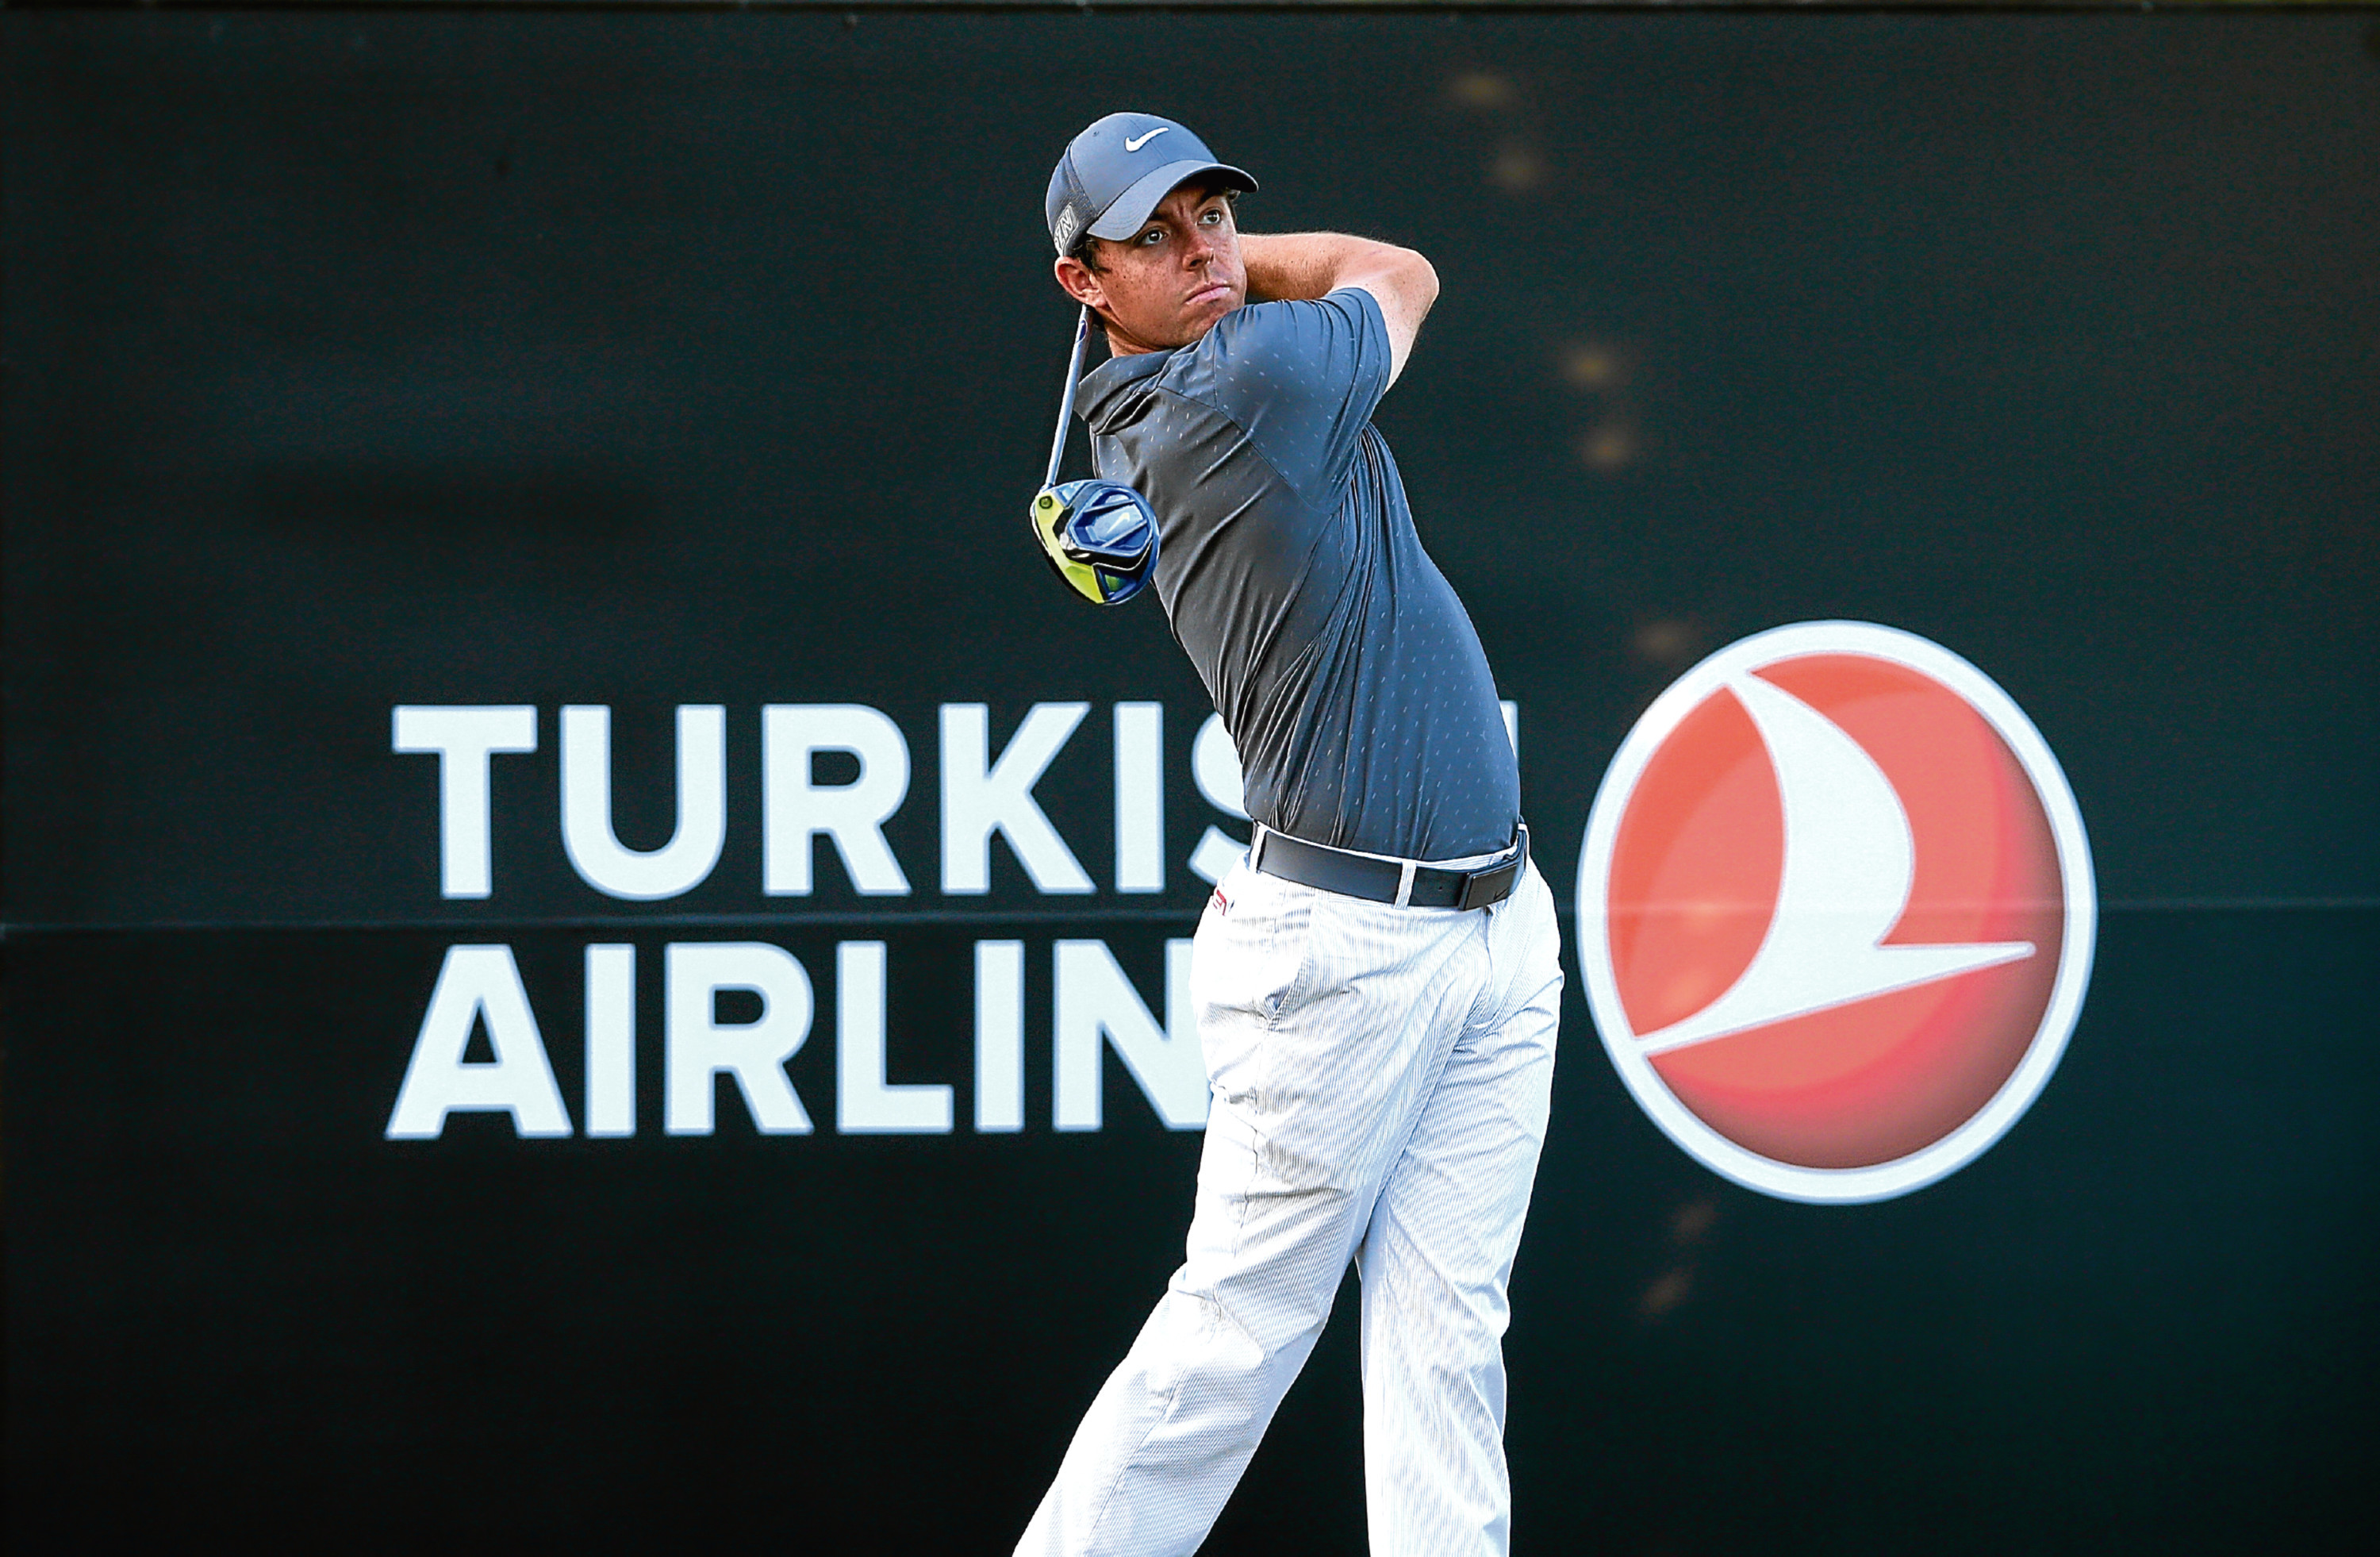 Rory McIlroy at last year's Turkish Airlines Open in Antalya. THis year's event is in doubt due to security concerns.